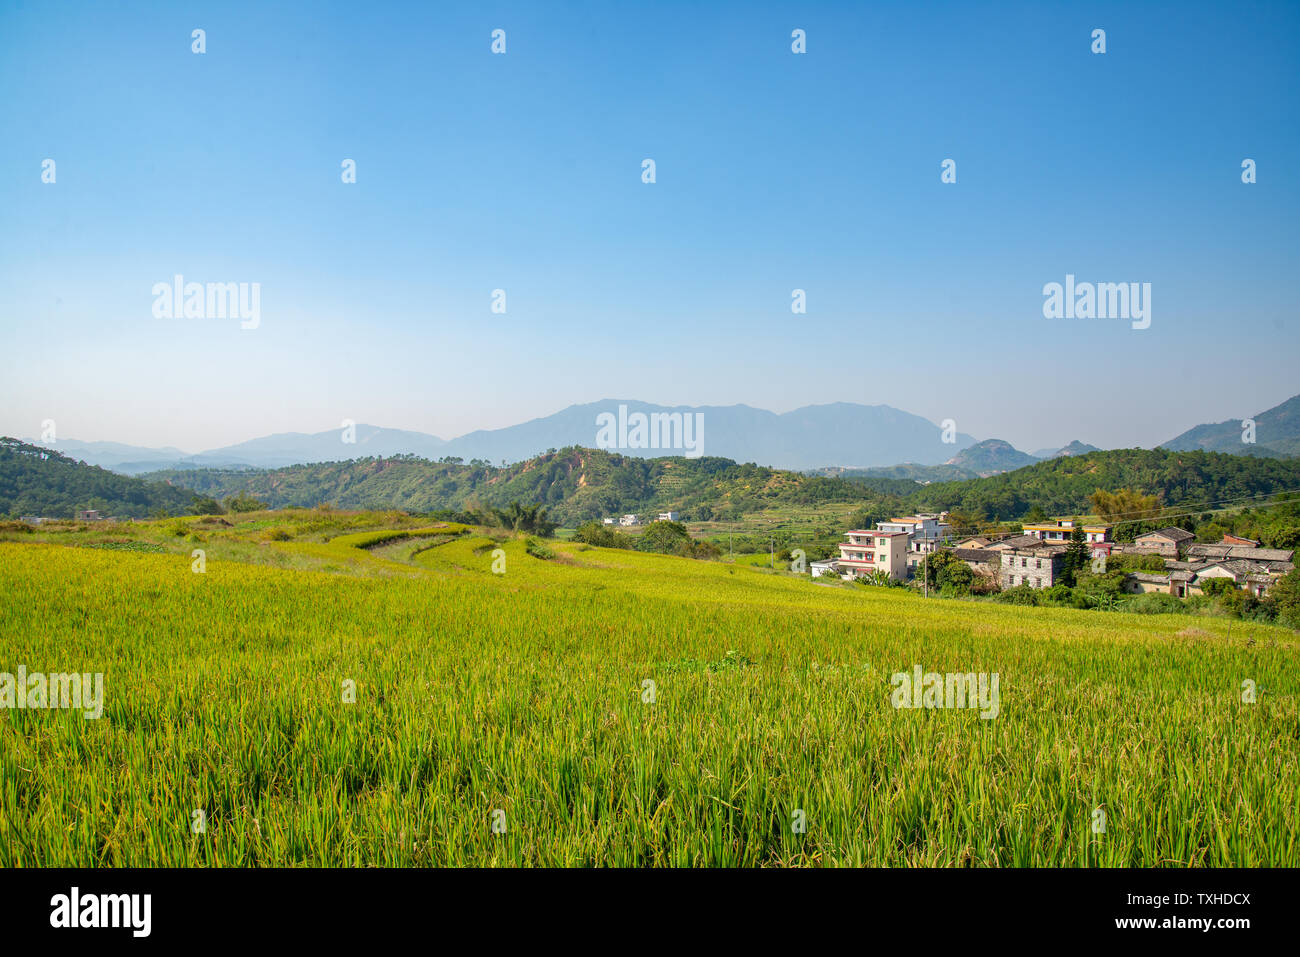 Mountain Valley With Agricultural Crops Stock Photos